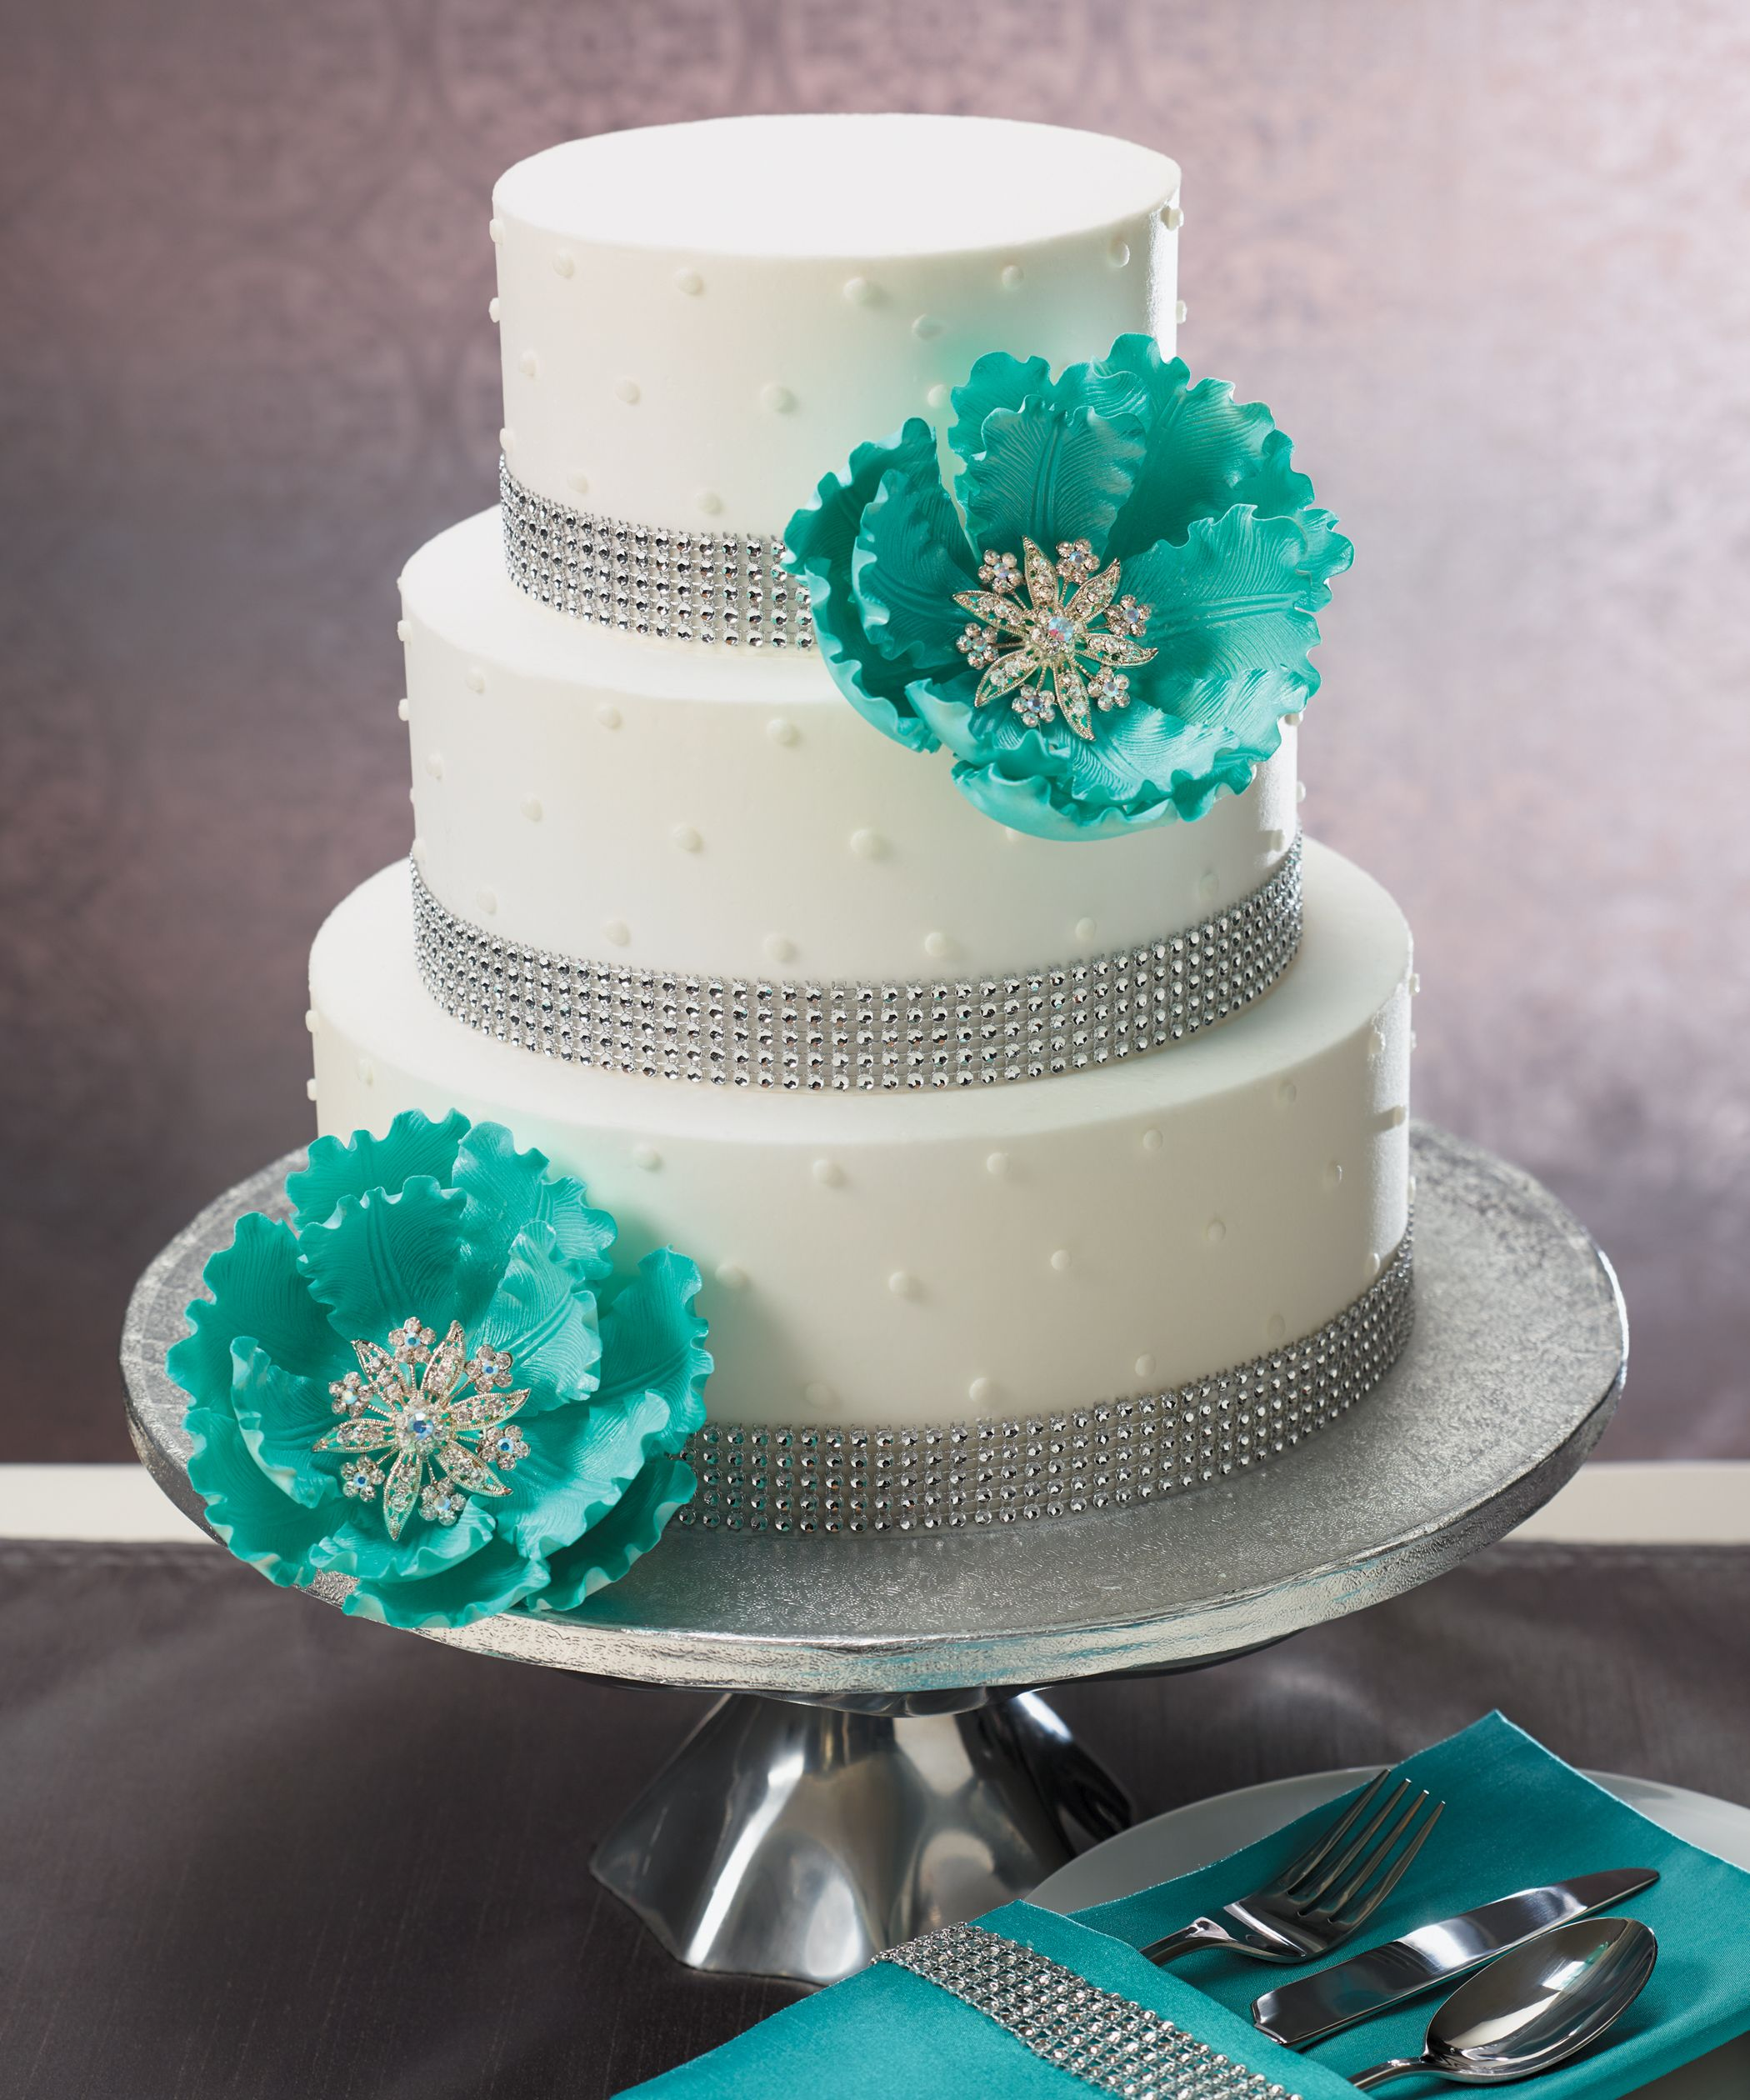 Sparkle Wedding Cake Featuring Gum Paste Peonies And Bling From